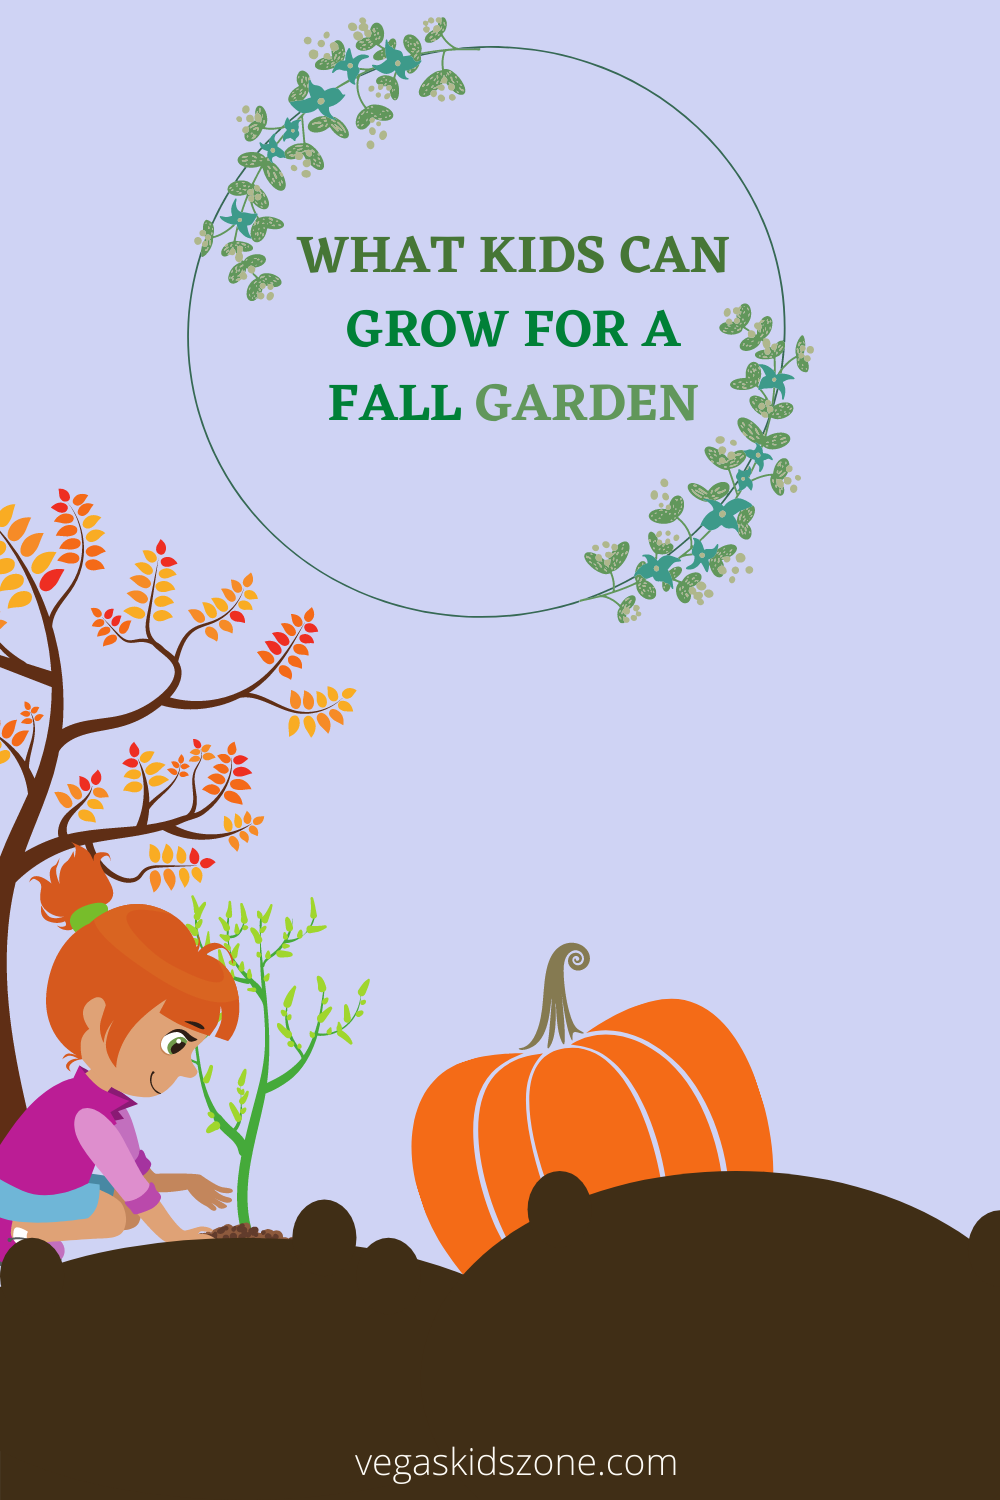 Kids can learn a lot from a fall garden and have crops ready for holiday meals.